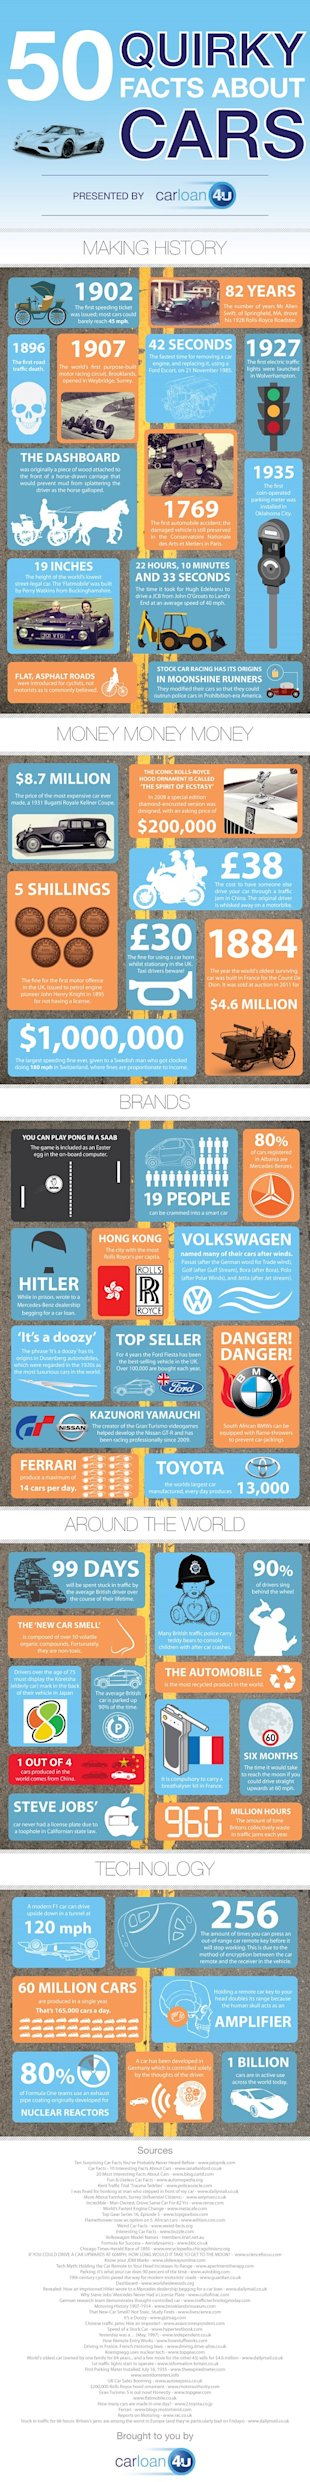 50 Quirky Facts About Cars [Infographic]  image carloan4u  1371570825  5 0   c a r   f a c t s resize